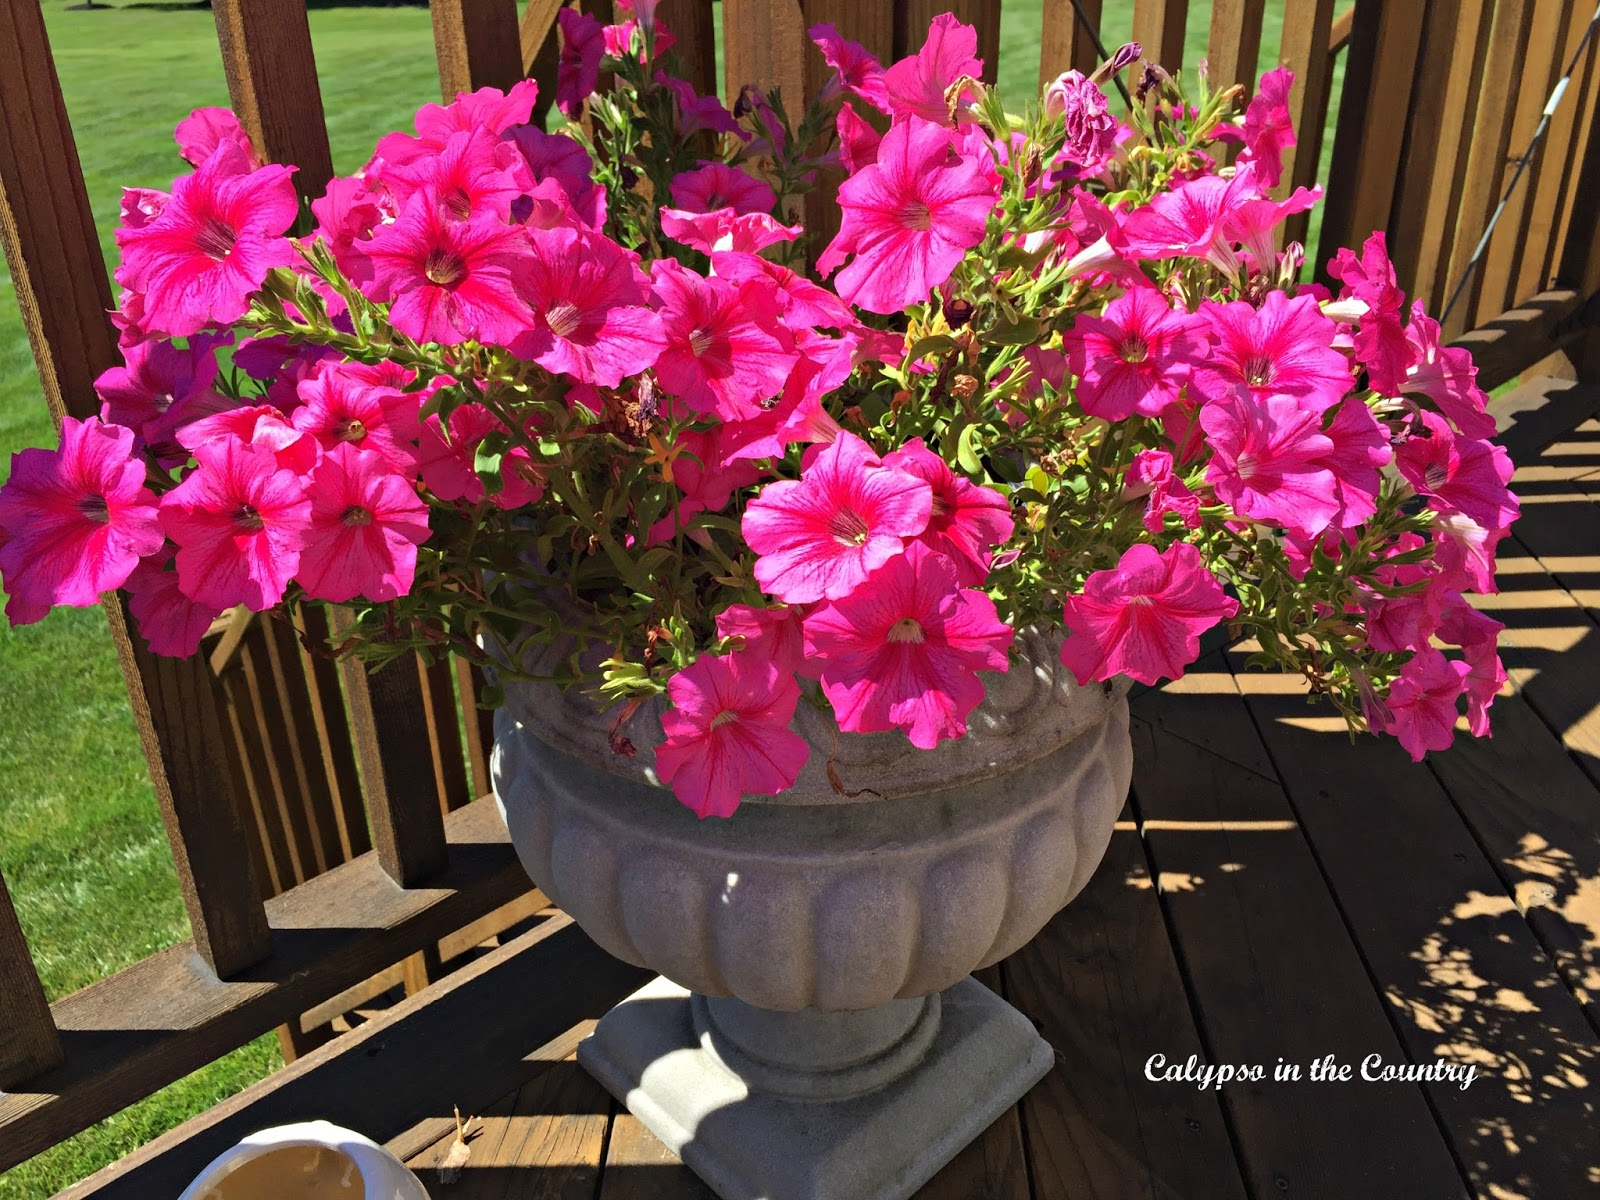 Pink Petunias - Container gardening success!